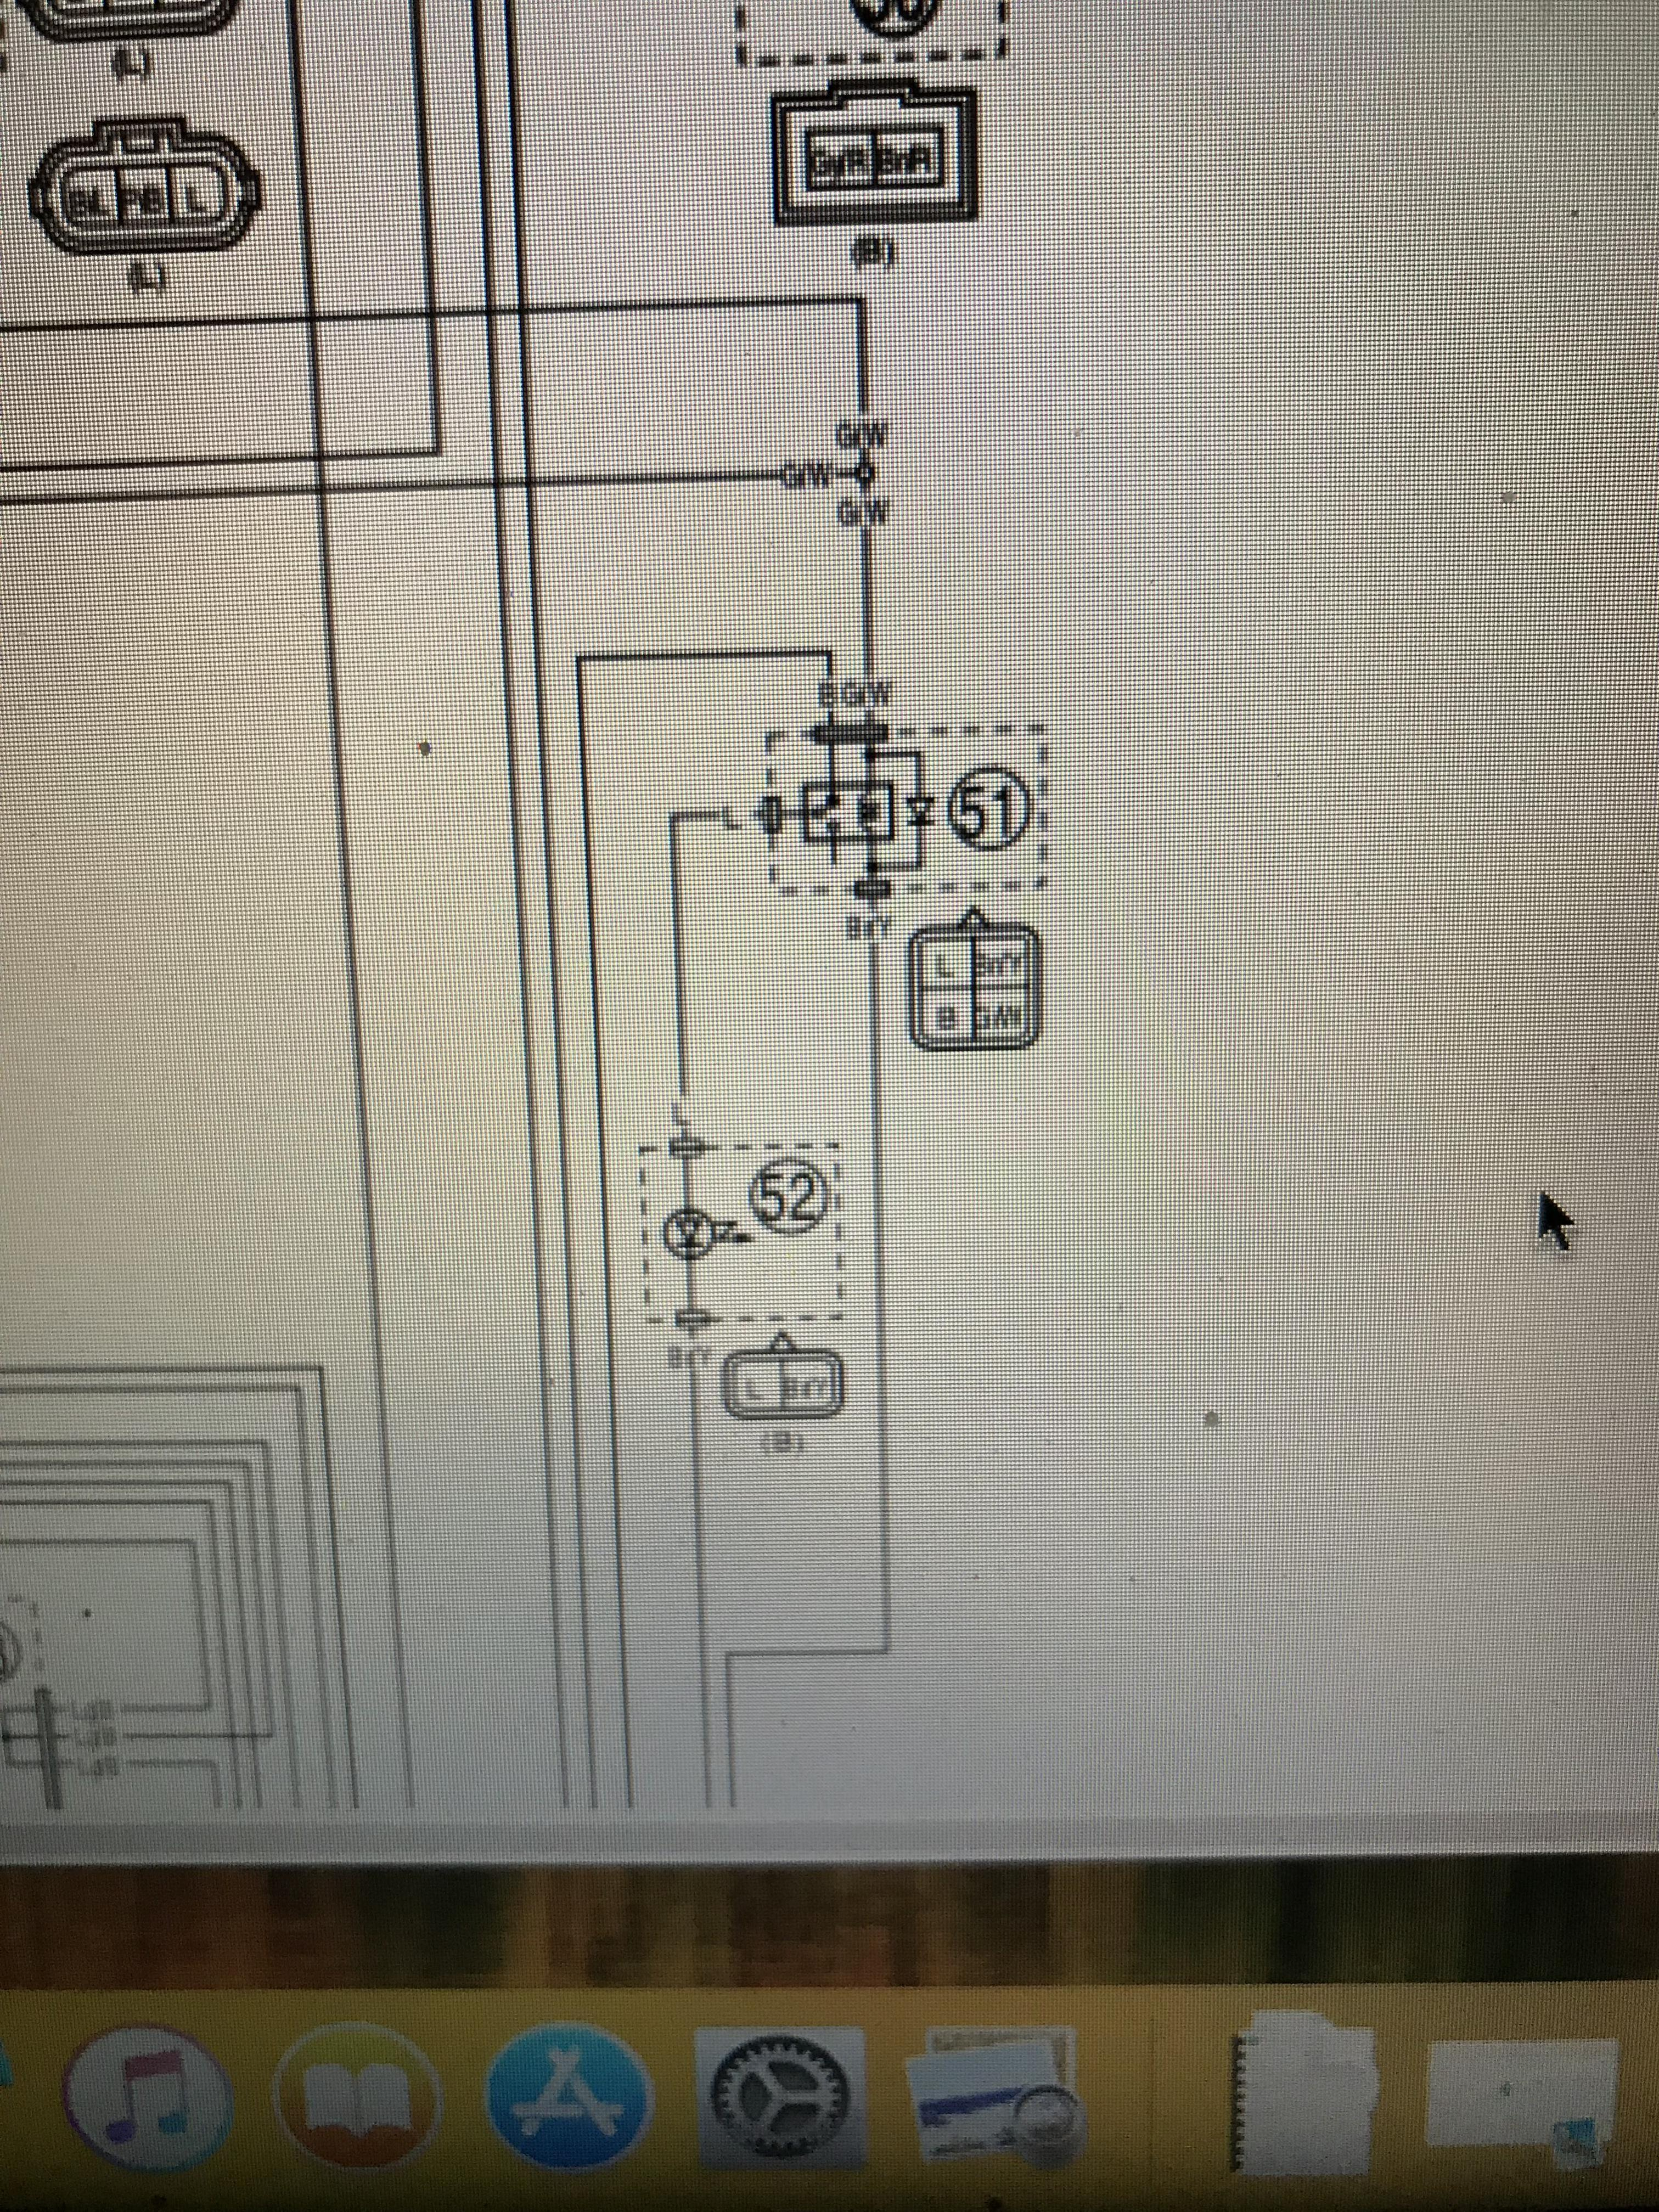 Need help with wiring still!!!